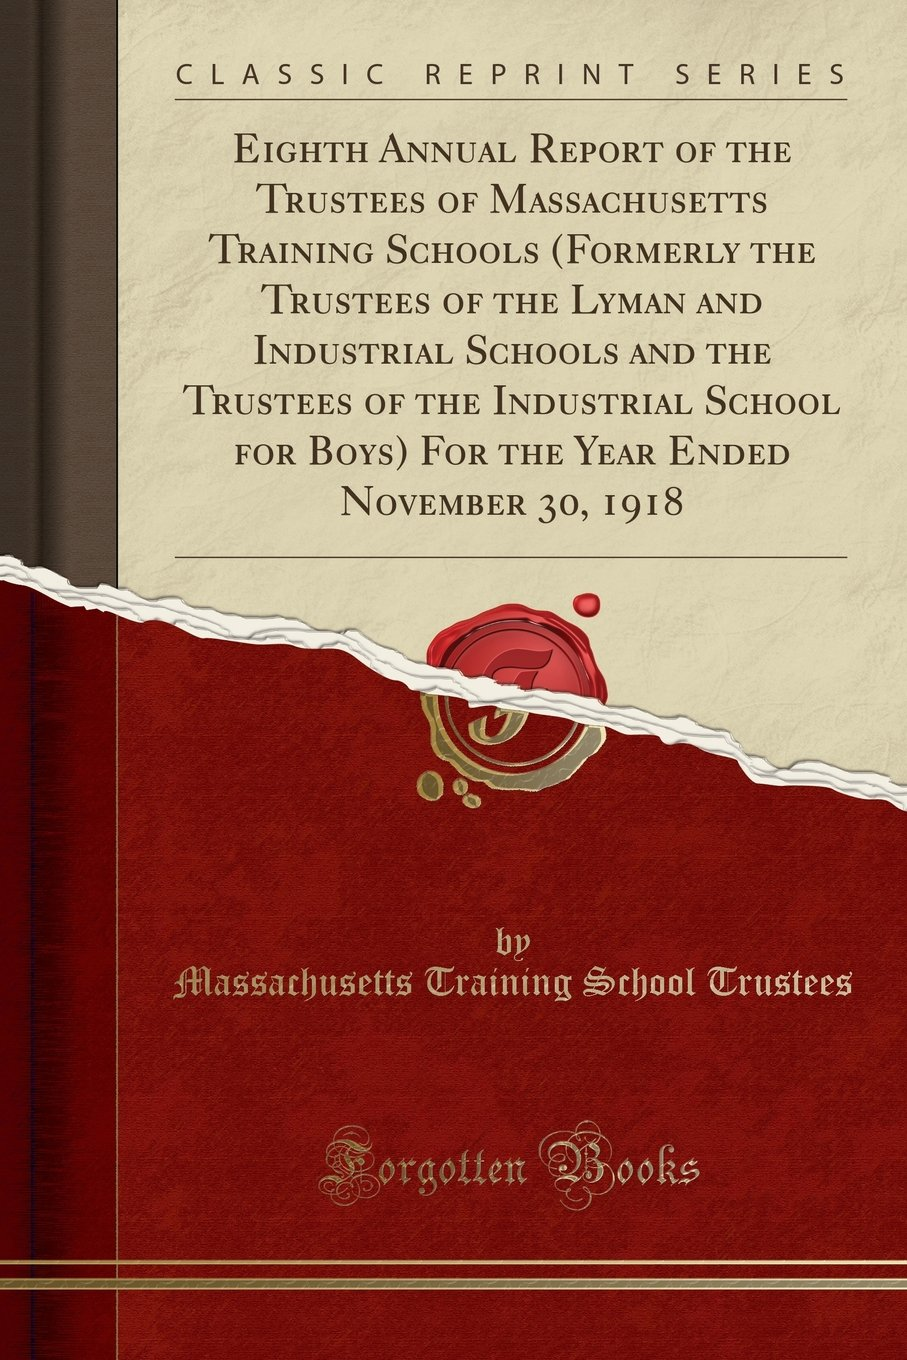 Download Eighth Annual Report of the Trustees of Massachusetts Training Schools (Formerly the Trustees of the Lyman and Industrial Schools and the Trustees of ... Ended November 30, 1918 (Classic Reprint) pdf